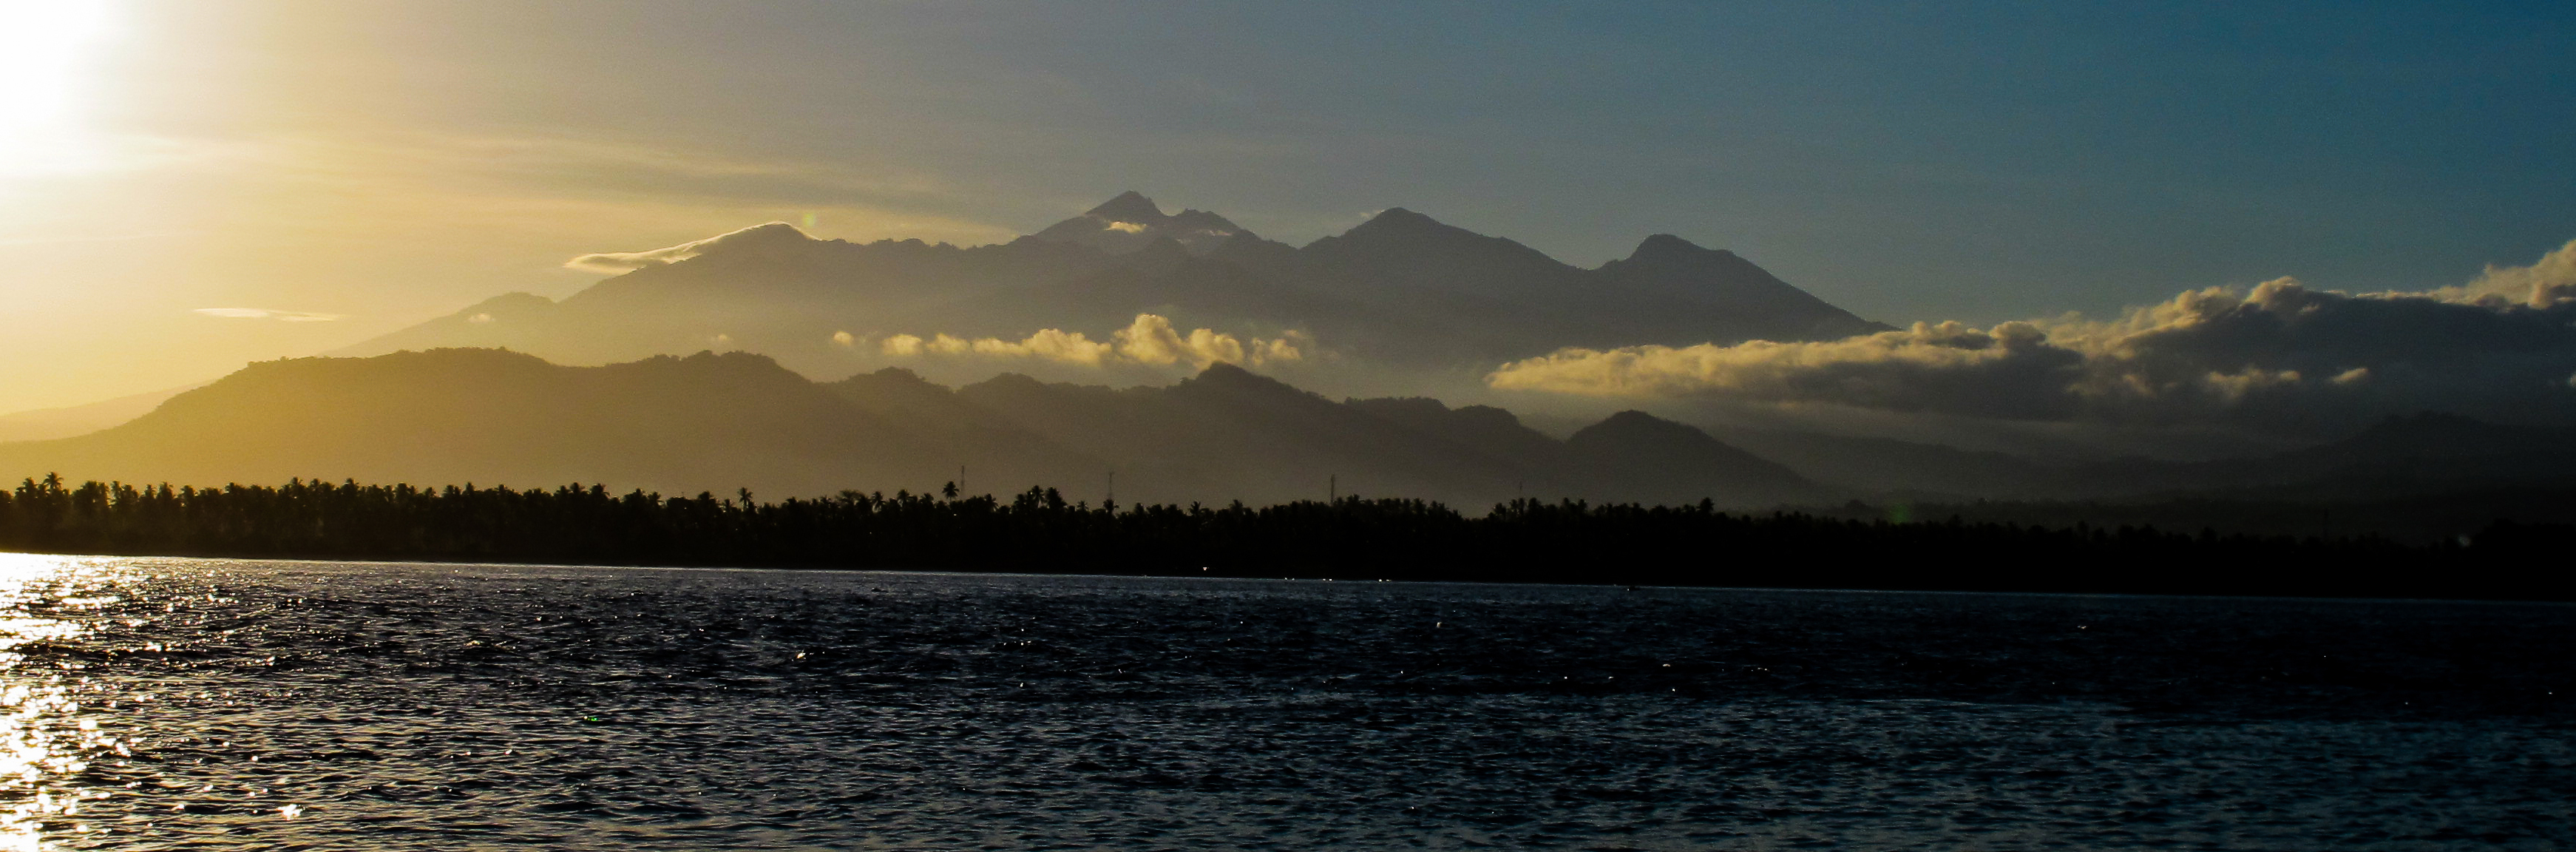 mount-rinjani-gili-sunrise-shark-conservation